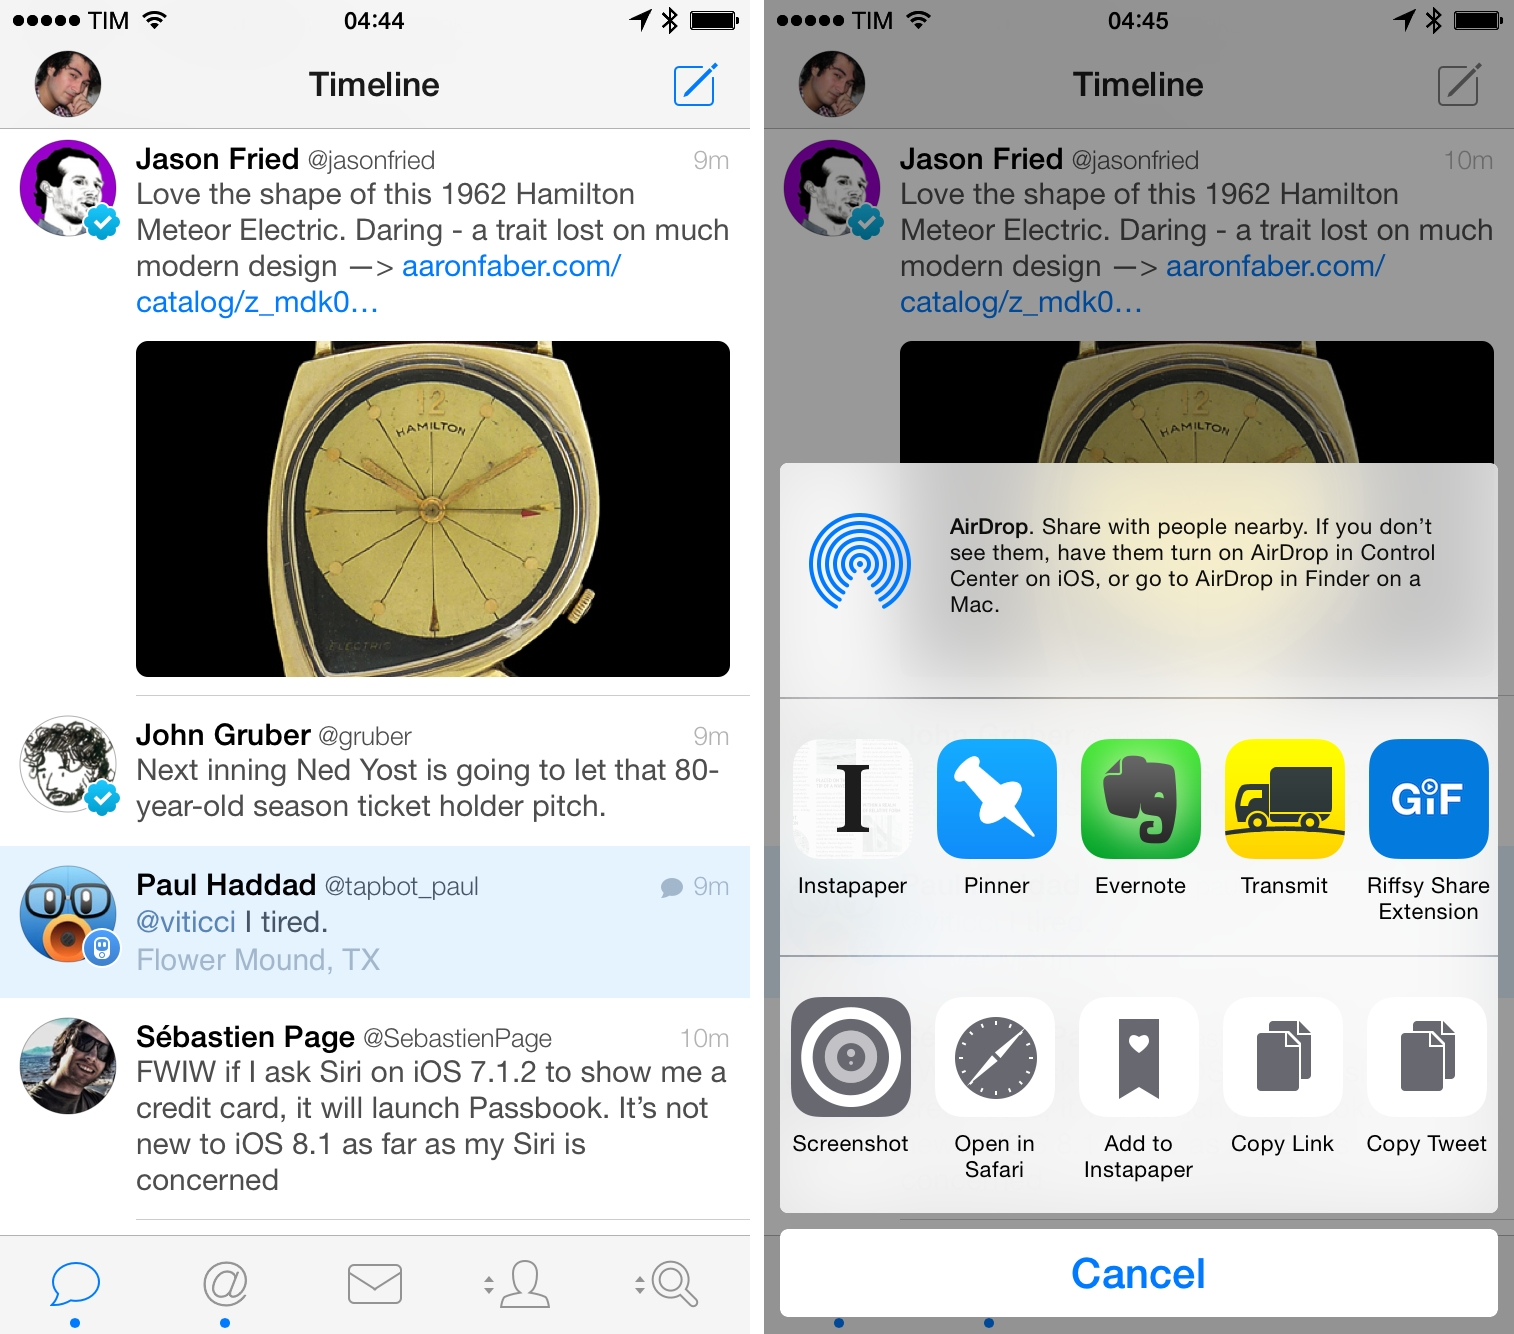 Tweetbot 3 5: iPhone 6 Support, Interactive Notifications